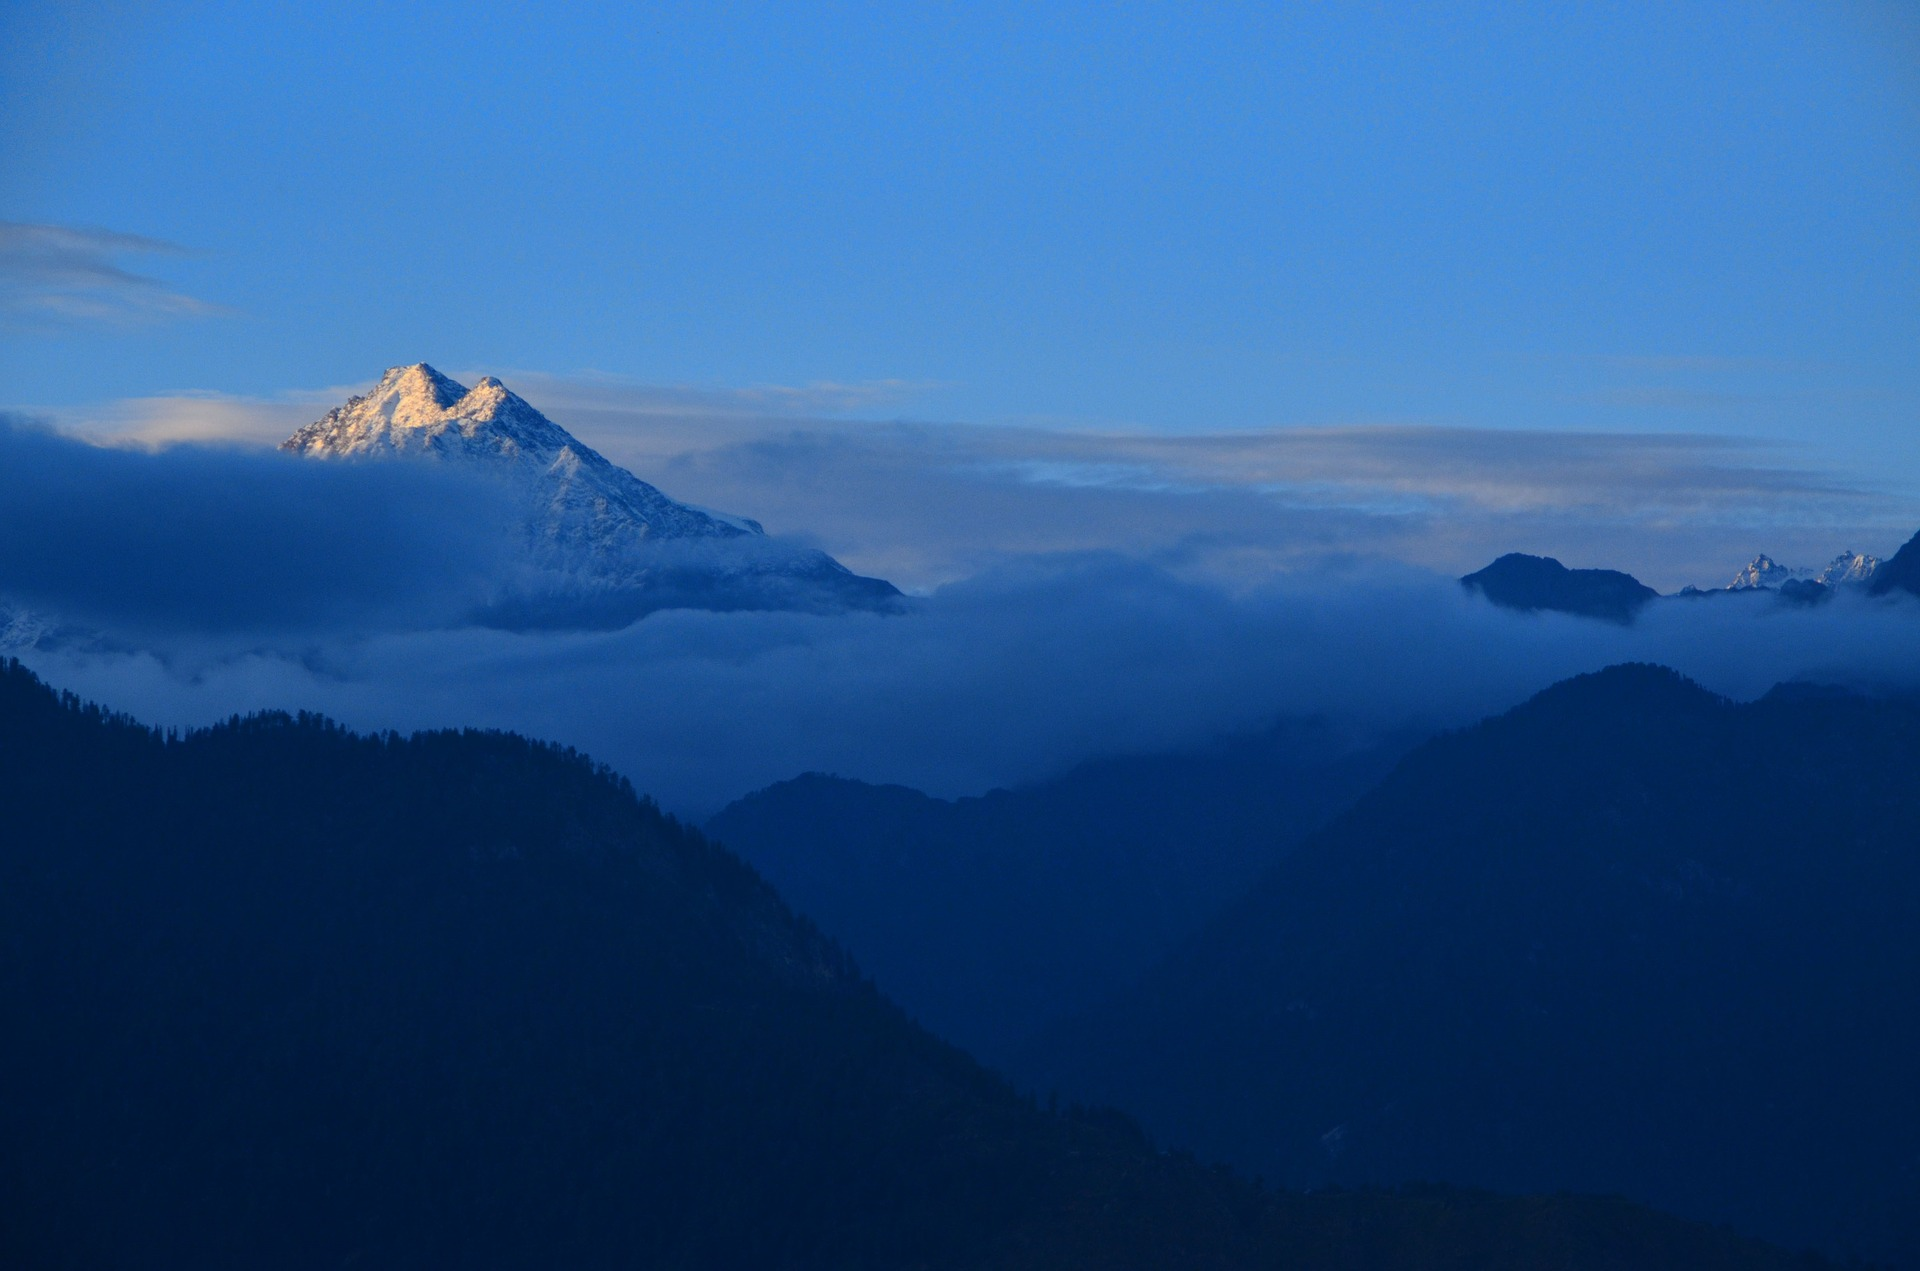 A picture of Himalayas at sunrise